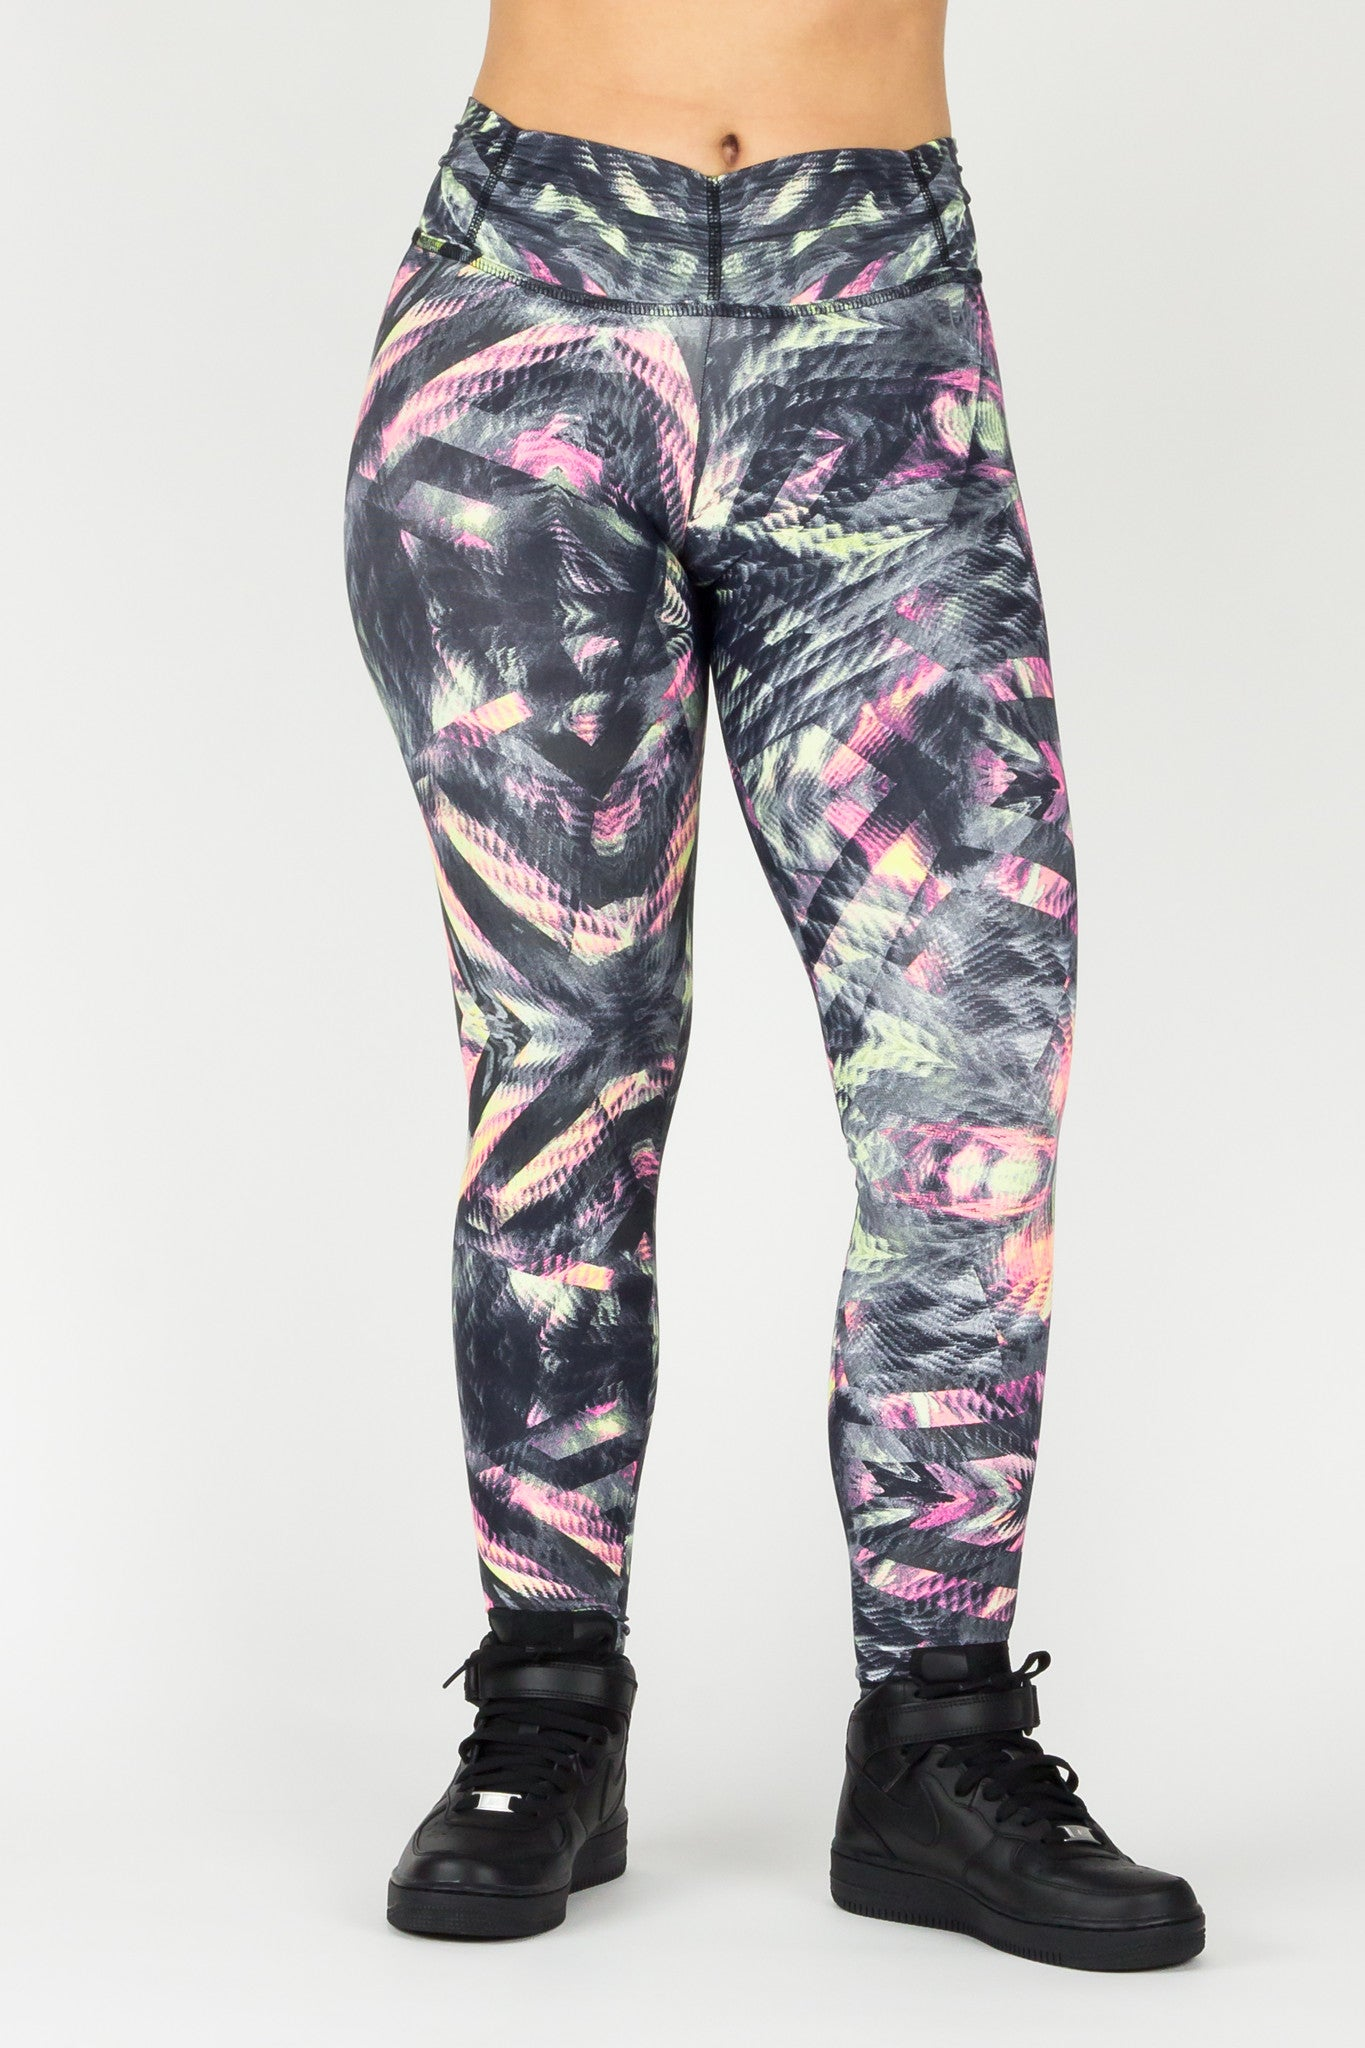 Legging Full Length Crazy Print - Amni, Black and Pink Thunder